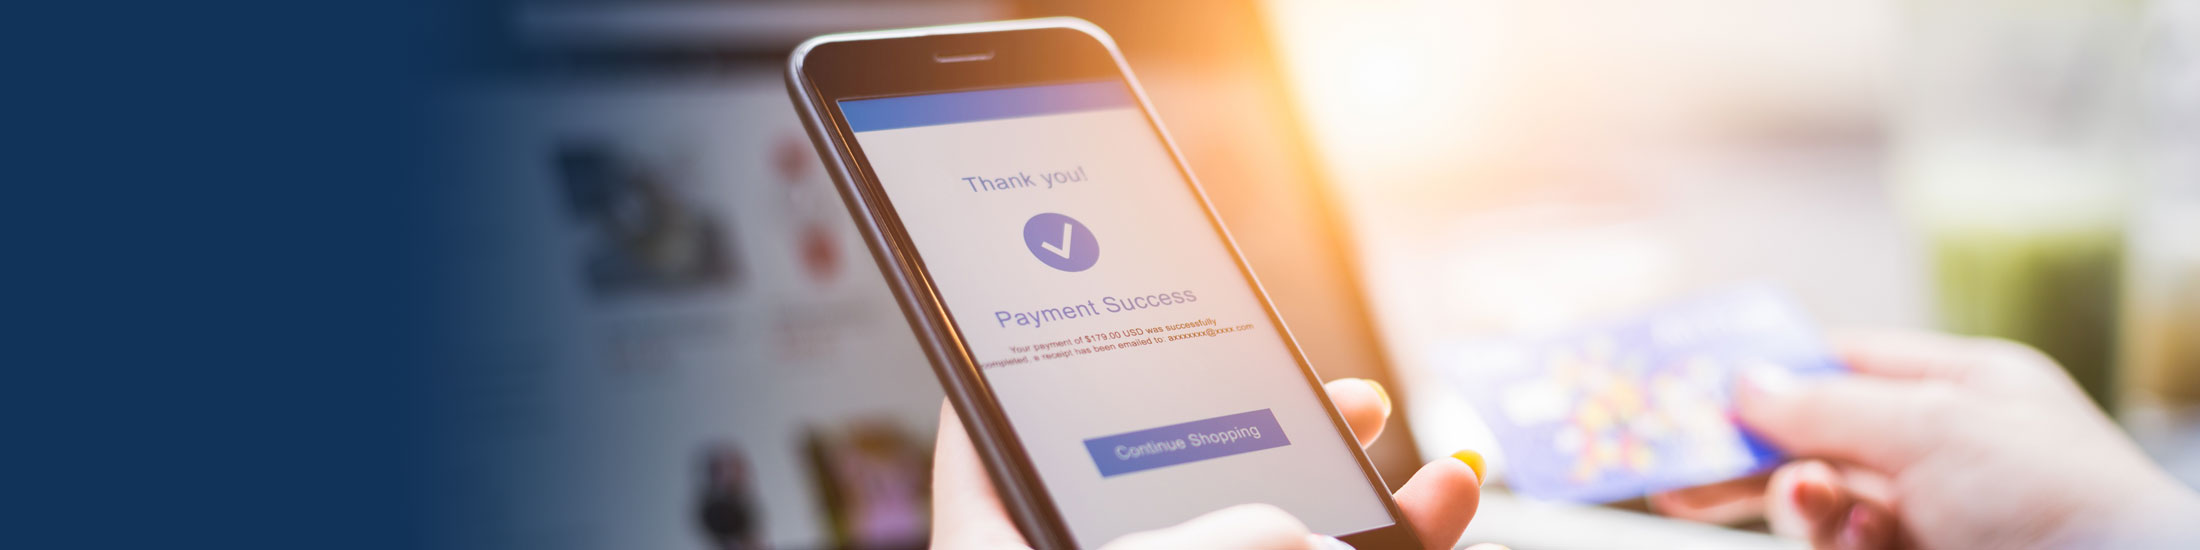 Digital Payment Demand Way Up Amid Coronavirus Pandemic